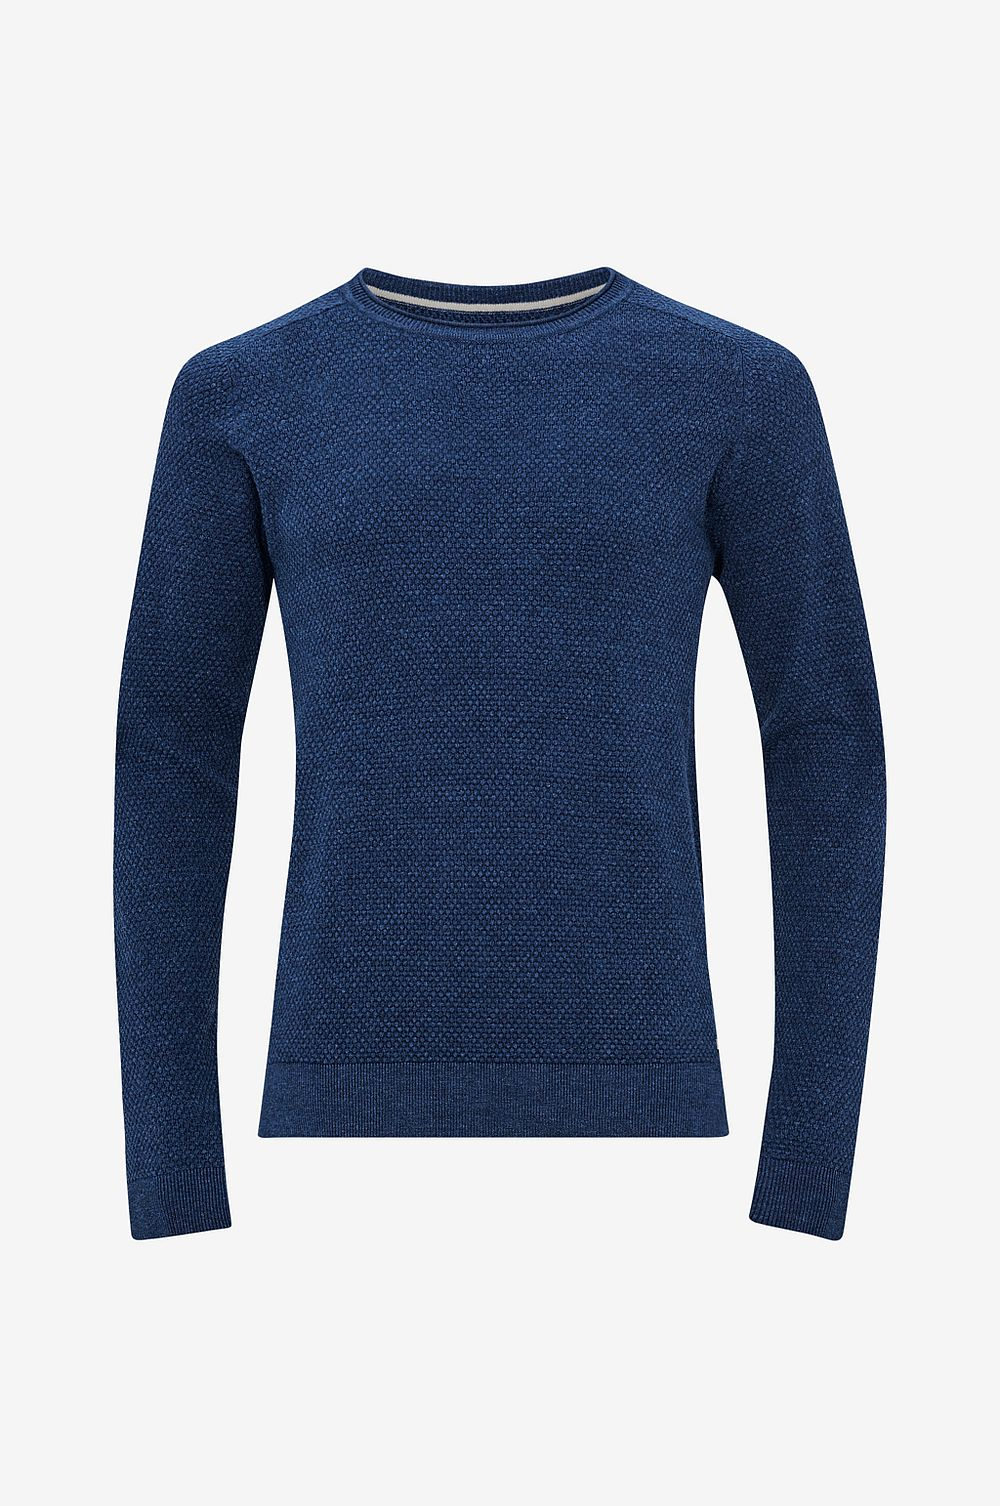 Jack & Jones Tröja jprHardy Knit Crew Neck - Blå - Herr